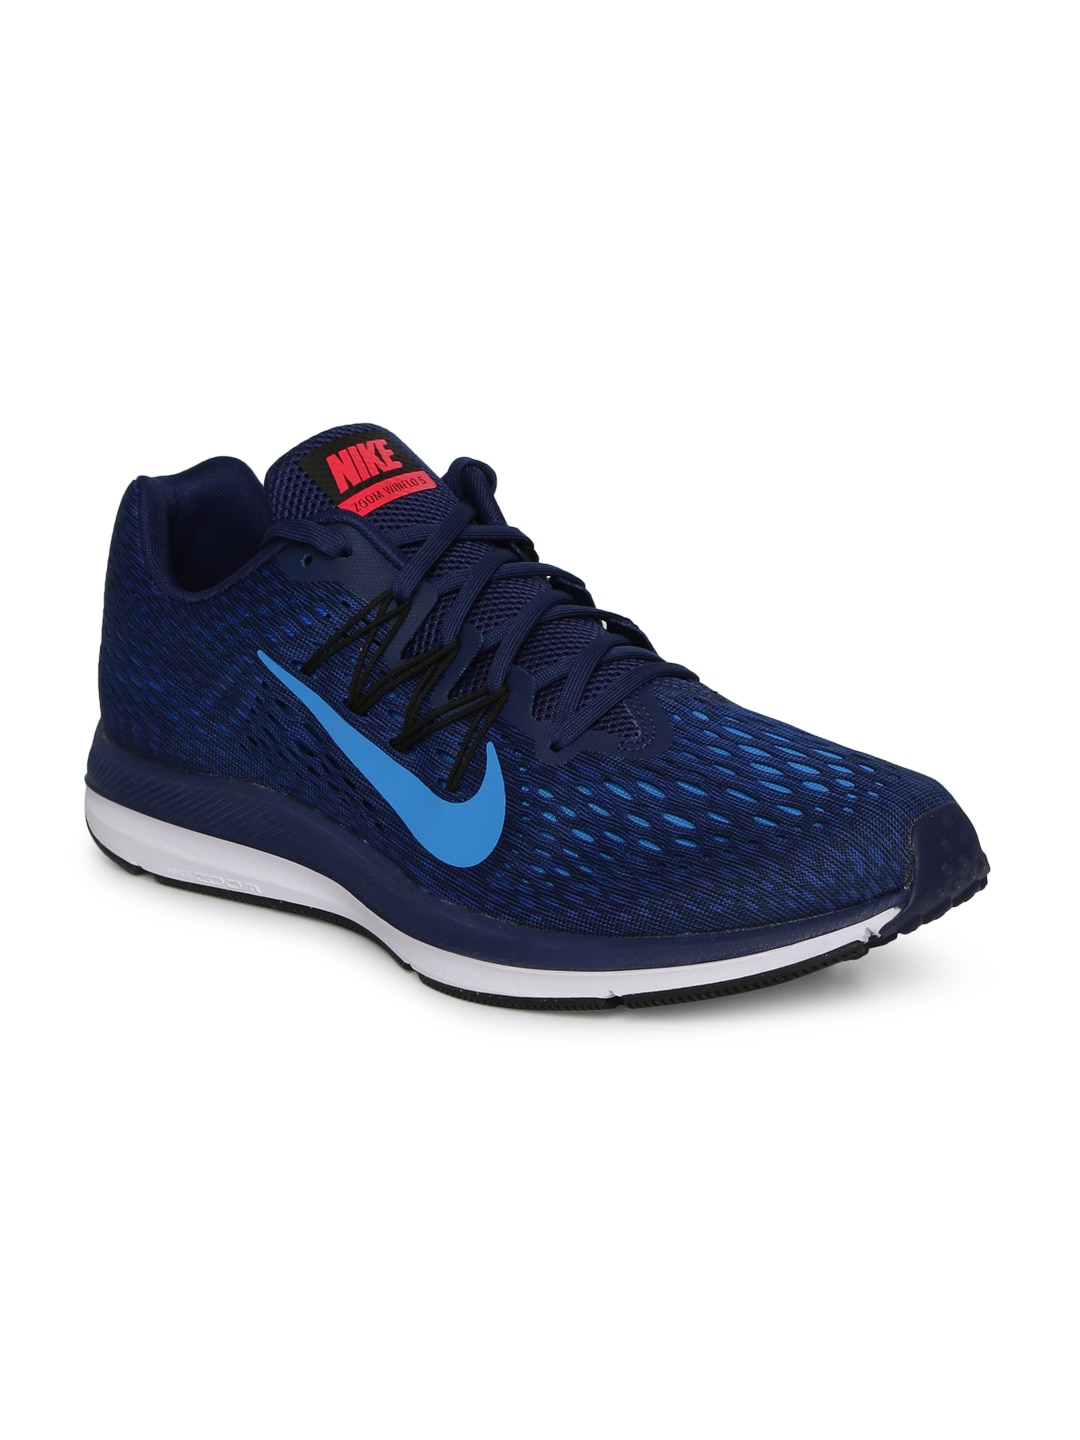 premium selection a089a f9fdc Sports Shoes for Men - Buy Men Sports Shoes Online in India - Myntra